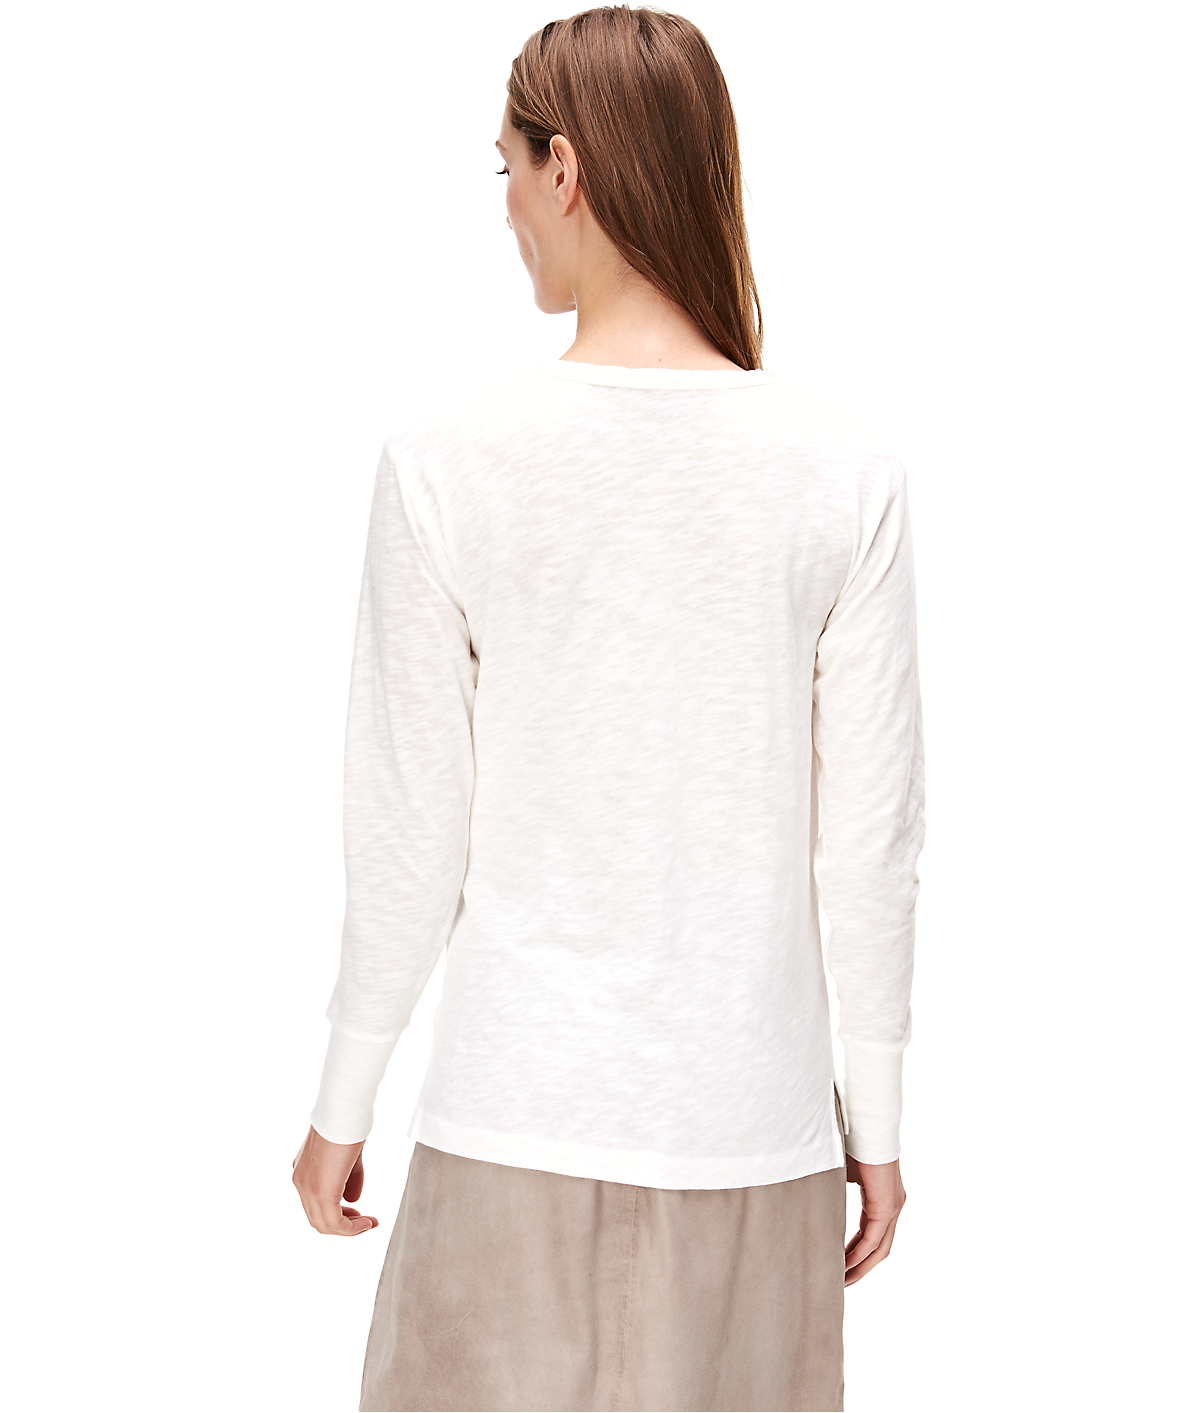 Long sleeve slub yarn top F1161404 from liebeskind